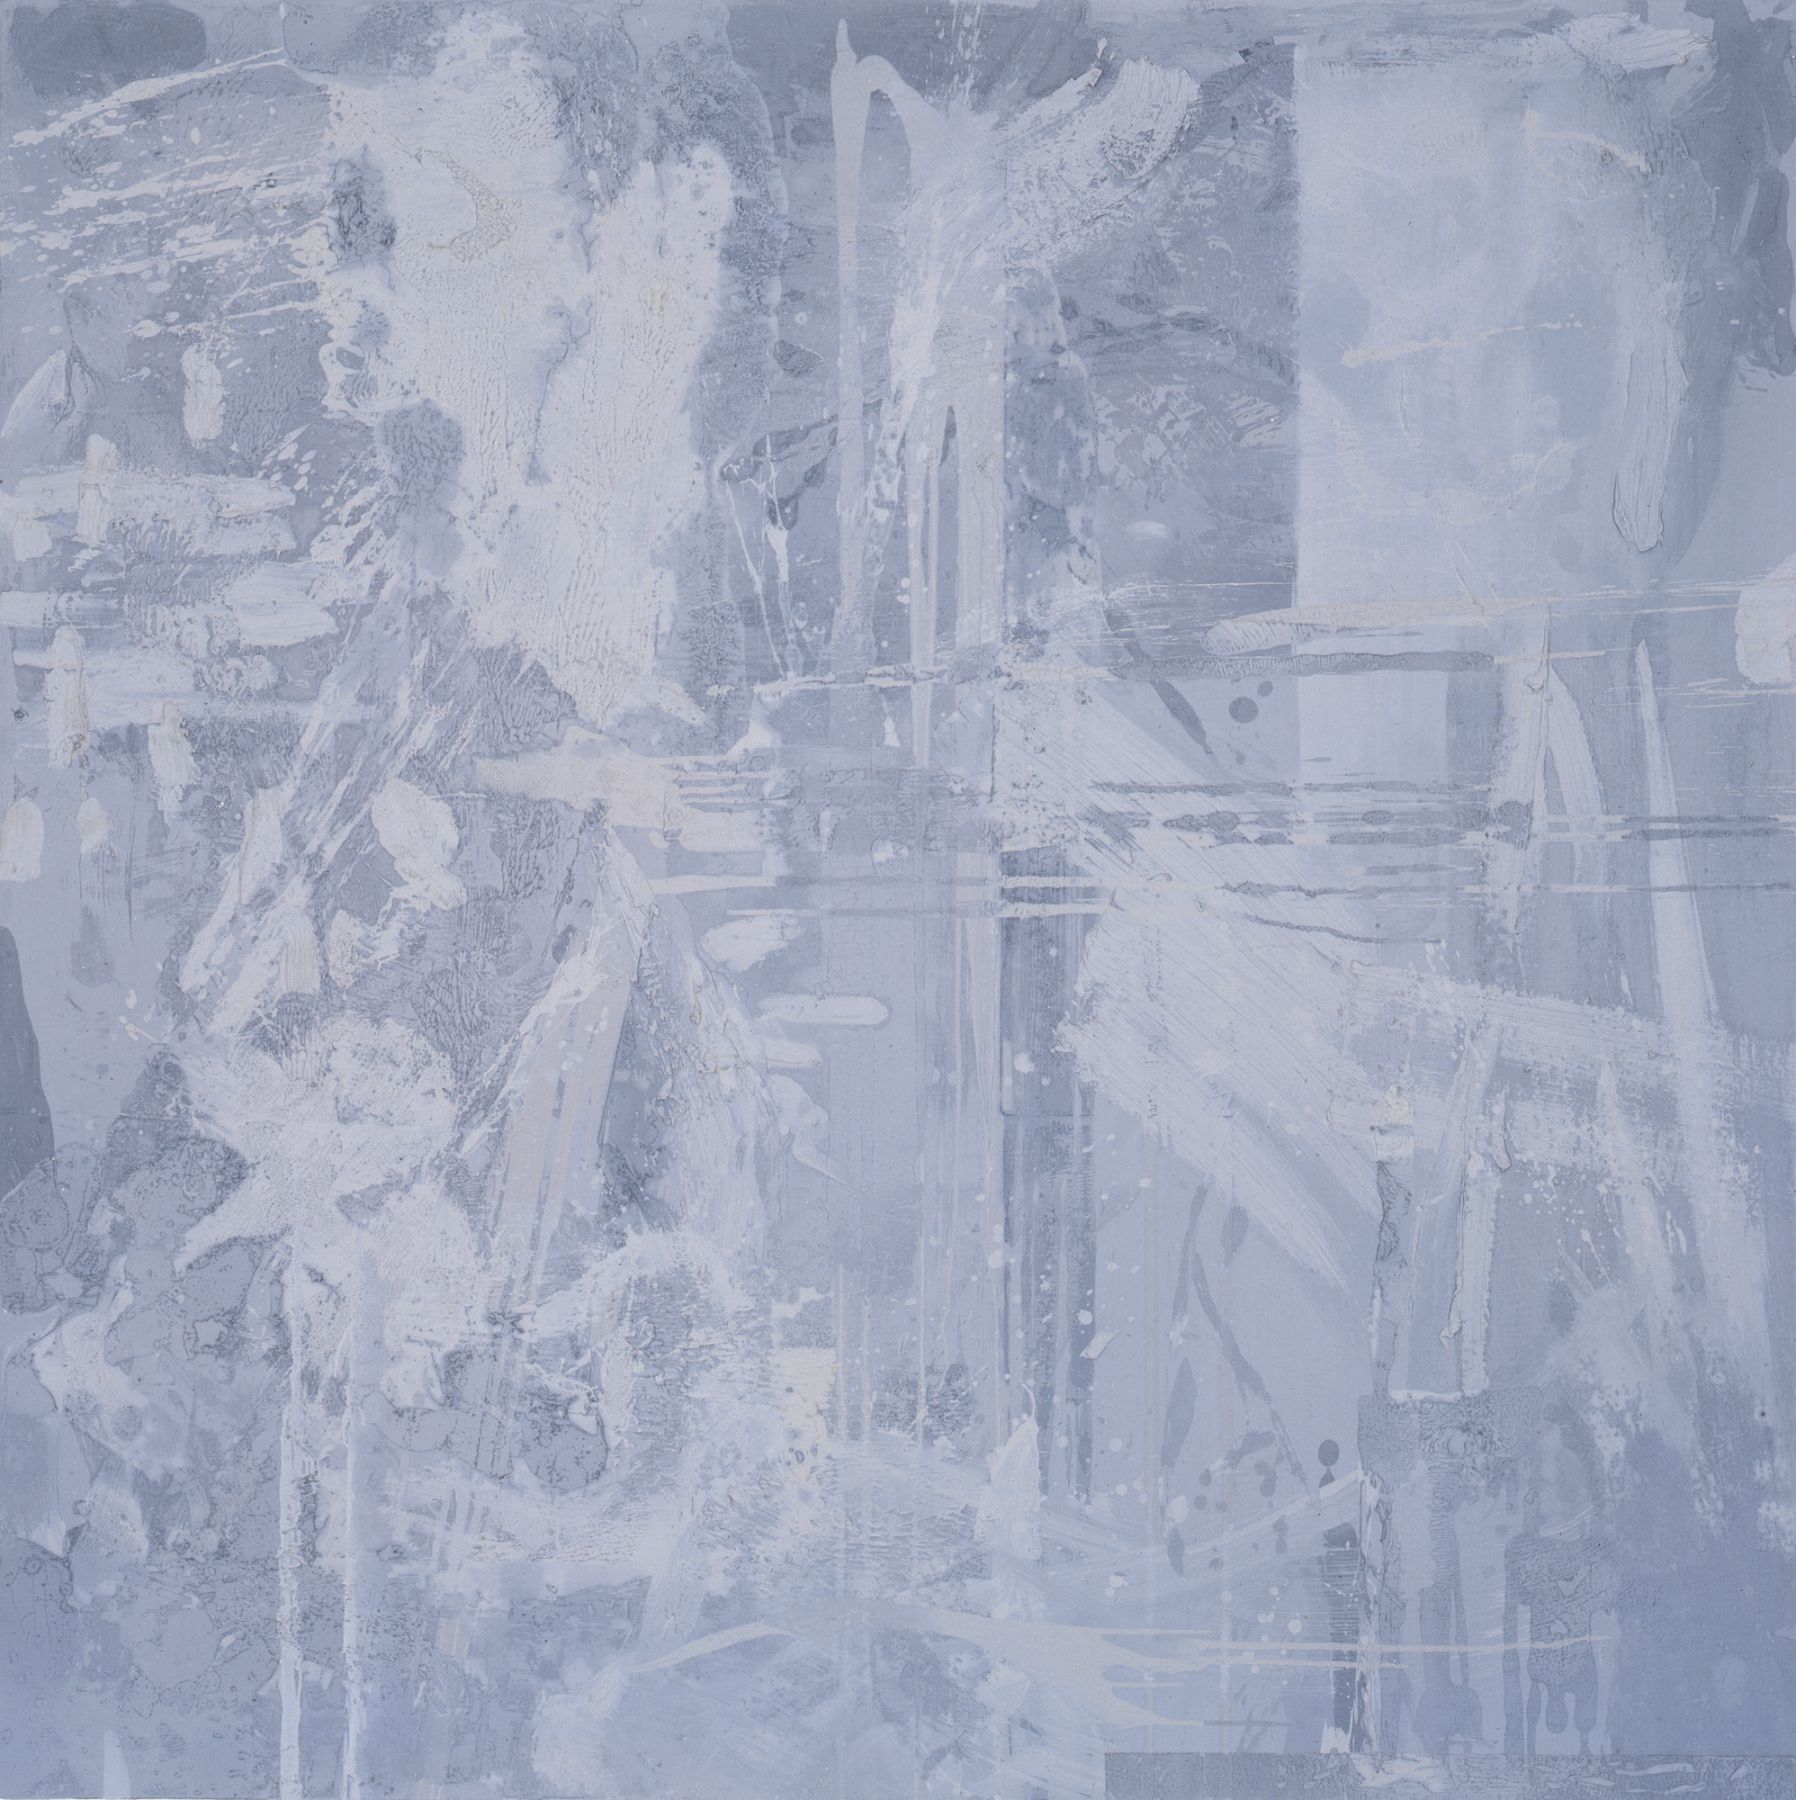 Jacqueline Humphries,  Untitled (gray #1), 1997, Oil on linen, 72 x 72 inches